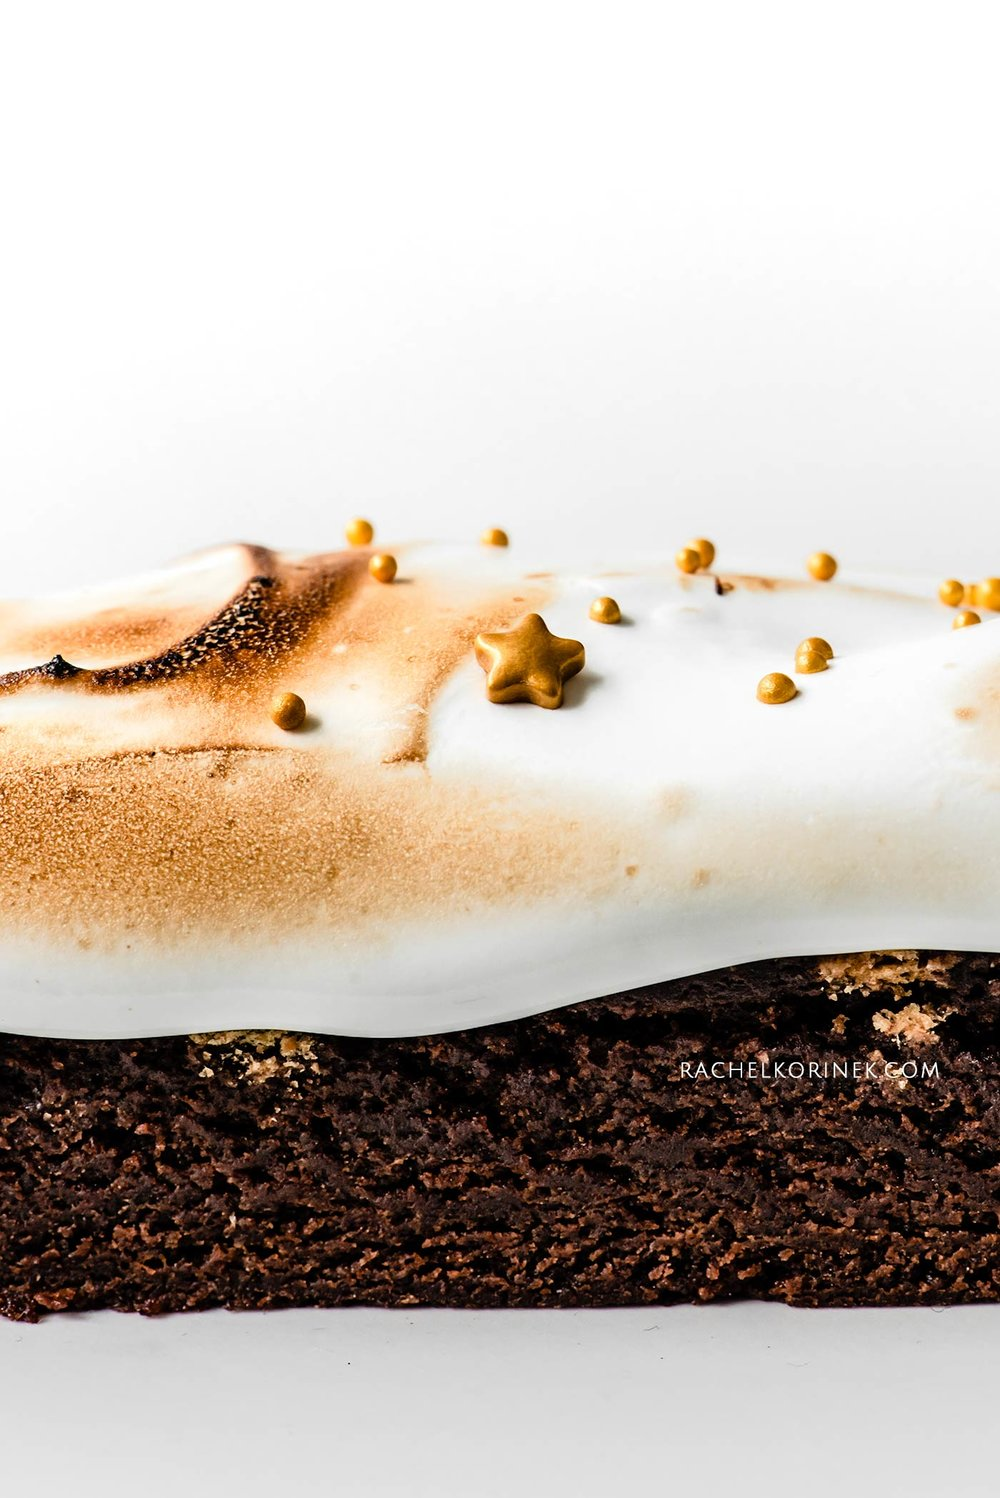 Rachel Korinek   Food Photographer Christmas S'mores Brownies  Click to check out my latest food photography projects.  #twolovesstudio #beautifulcuisine #foodbloggerpro #foodphotography #learnfoodphotography #foodblogger #learnphotography #foodstyling #lightingtips #naturallight #foodphotographer